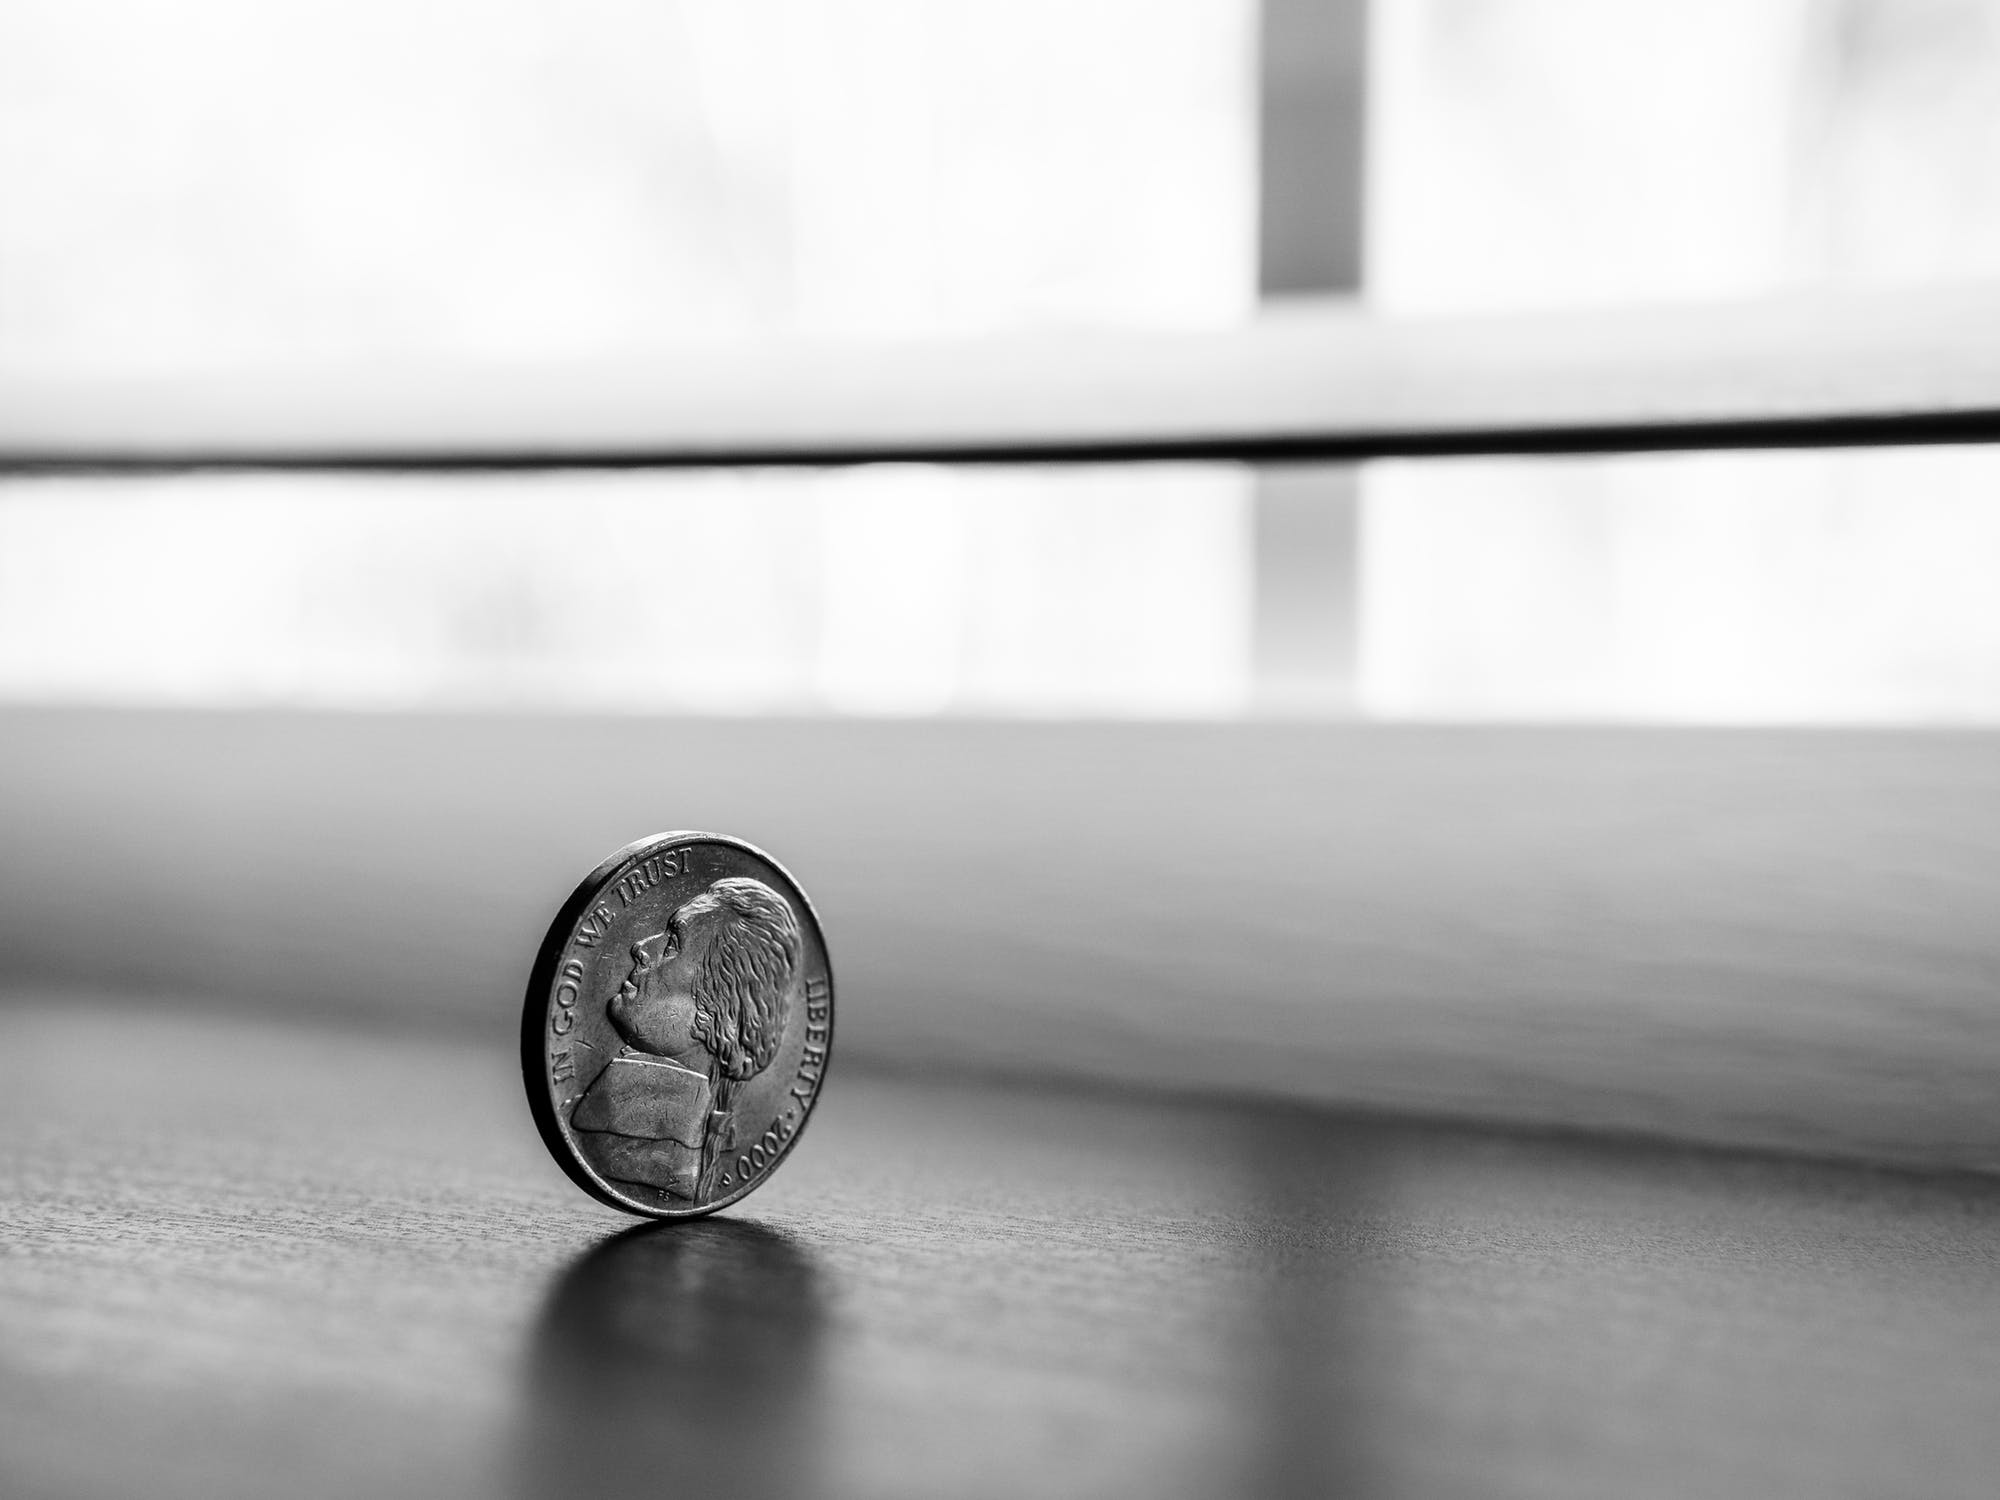 Stock image of coin, heads or tails equals success or failure.